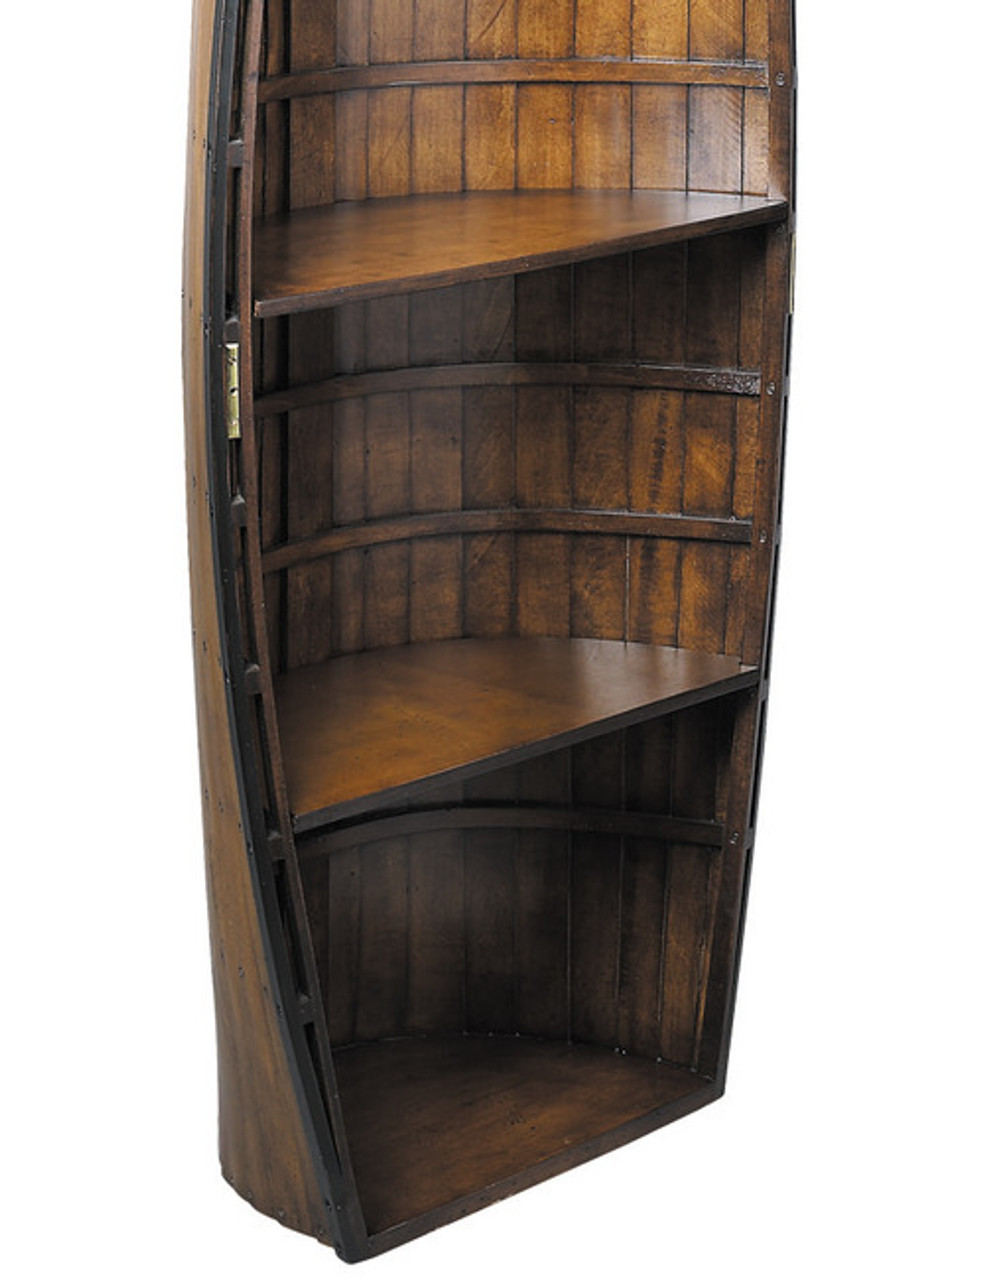 Bosun S Gig Wooden Rowing Boat Bookcase Shelf Authentic Models